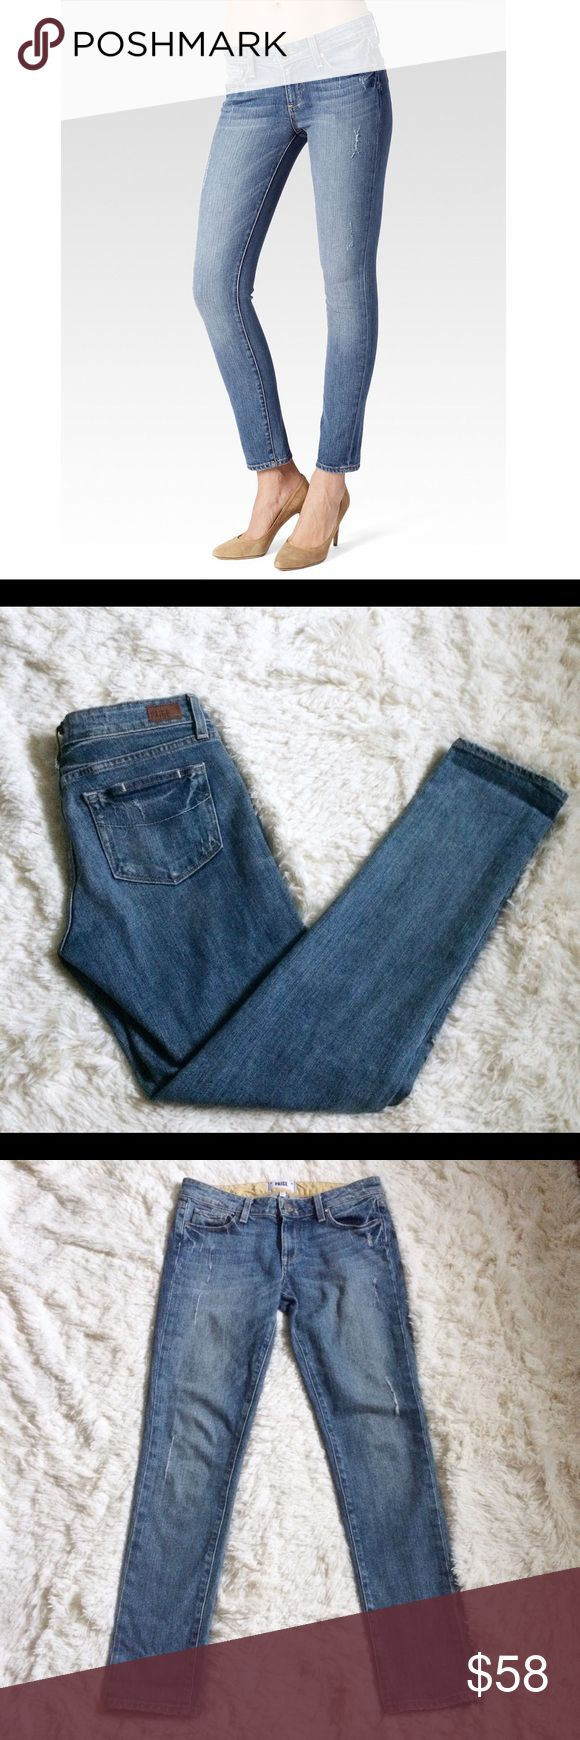 """PAIGE Skyline Ankle Peg Jeans size 27 Paige skyline Ankle peg jeans in beachwood wash- light wash with distressing. A mid-rise peg that gets slimmer from the knee to the leg opening with an inseam hitting at the ankle.  Measurements: waist- 15"""" across, rise- 8"""", inseam- 28"""" PAIGE Jeans Ankle & Cropped"""